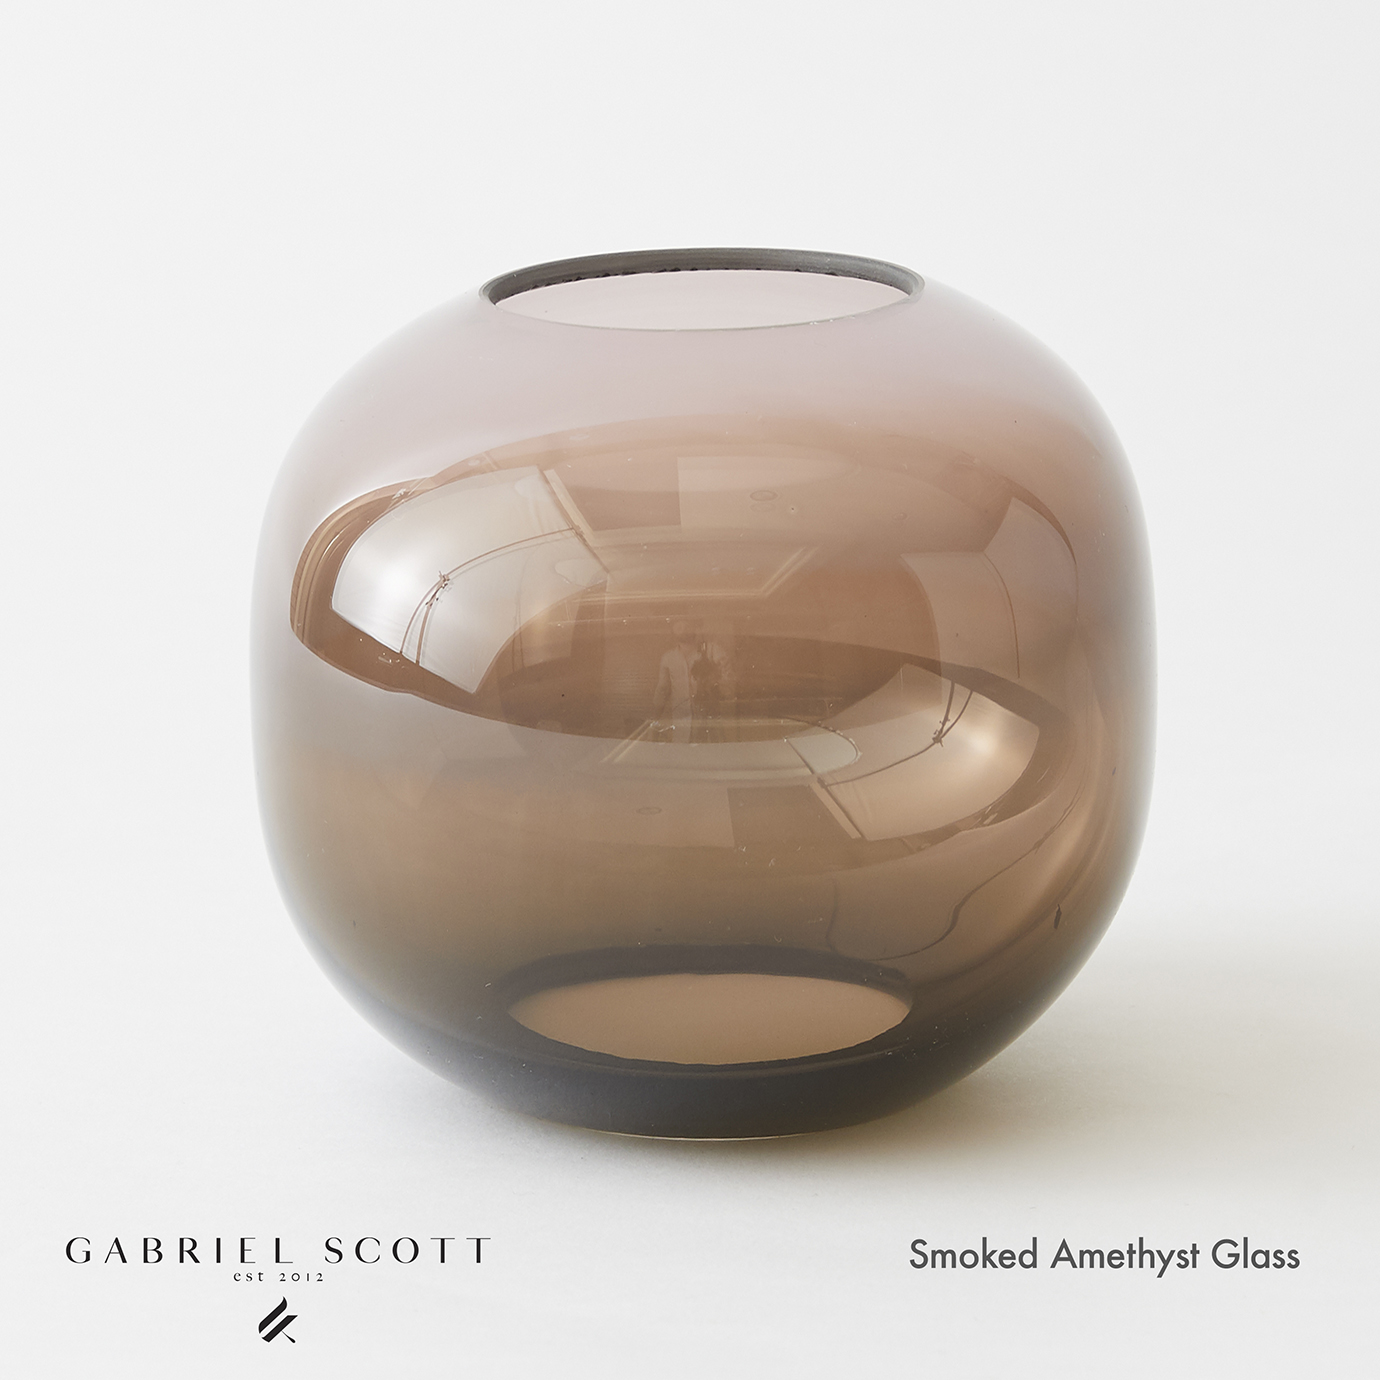 Smoked Amethyst Glass - GABRIEL SCOTT.jpg